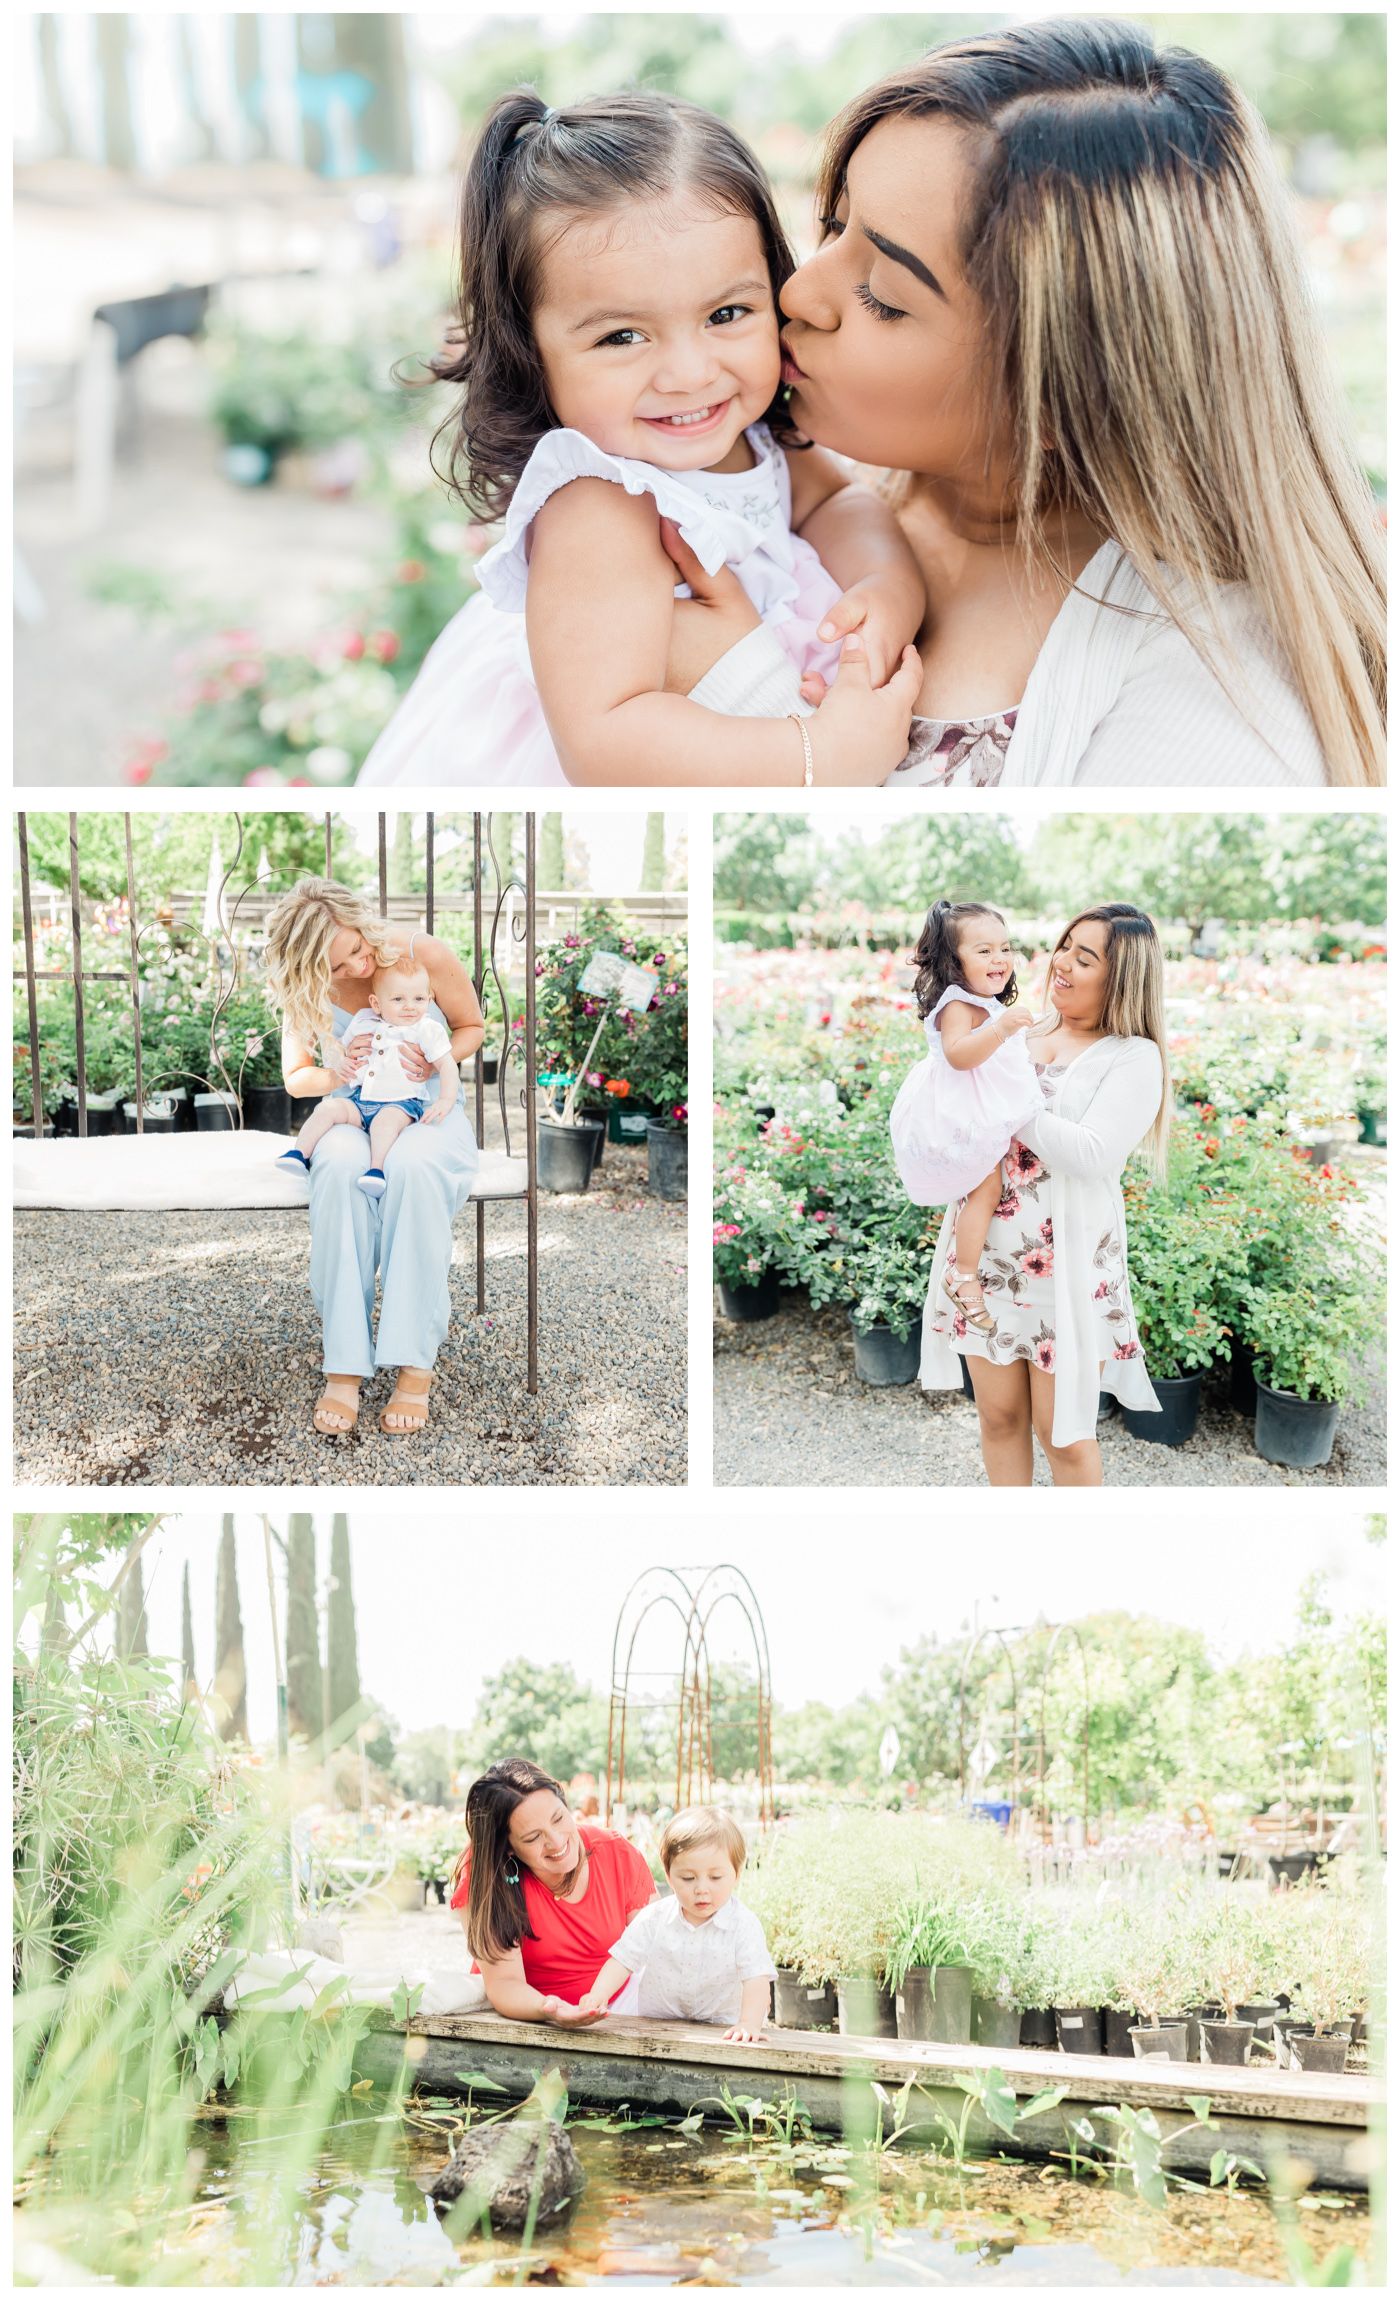 collage of images of mothers playing with little children